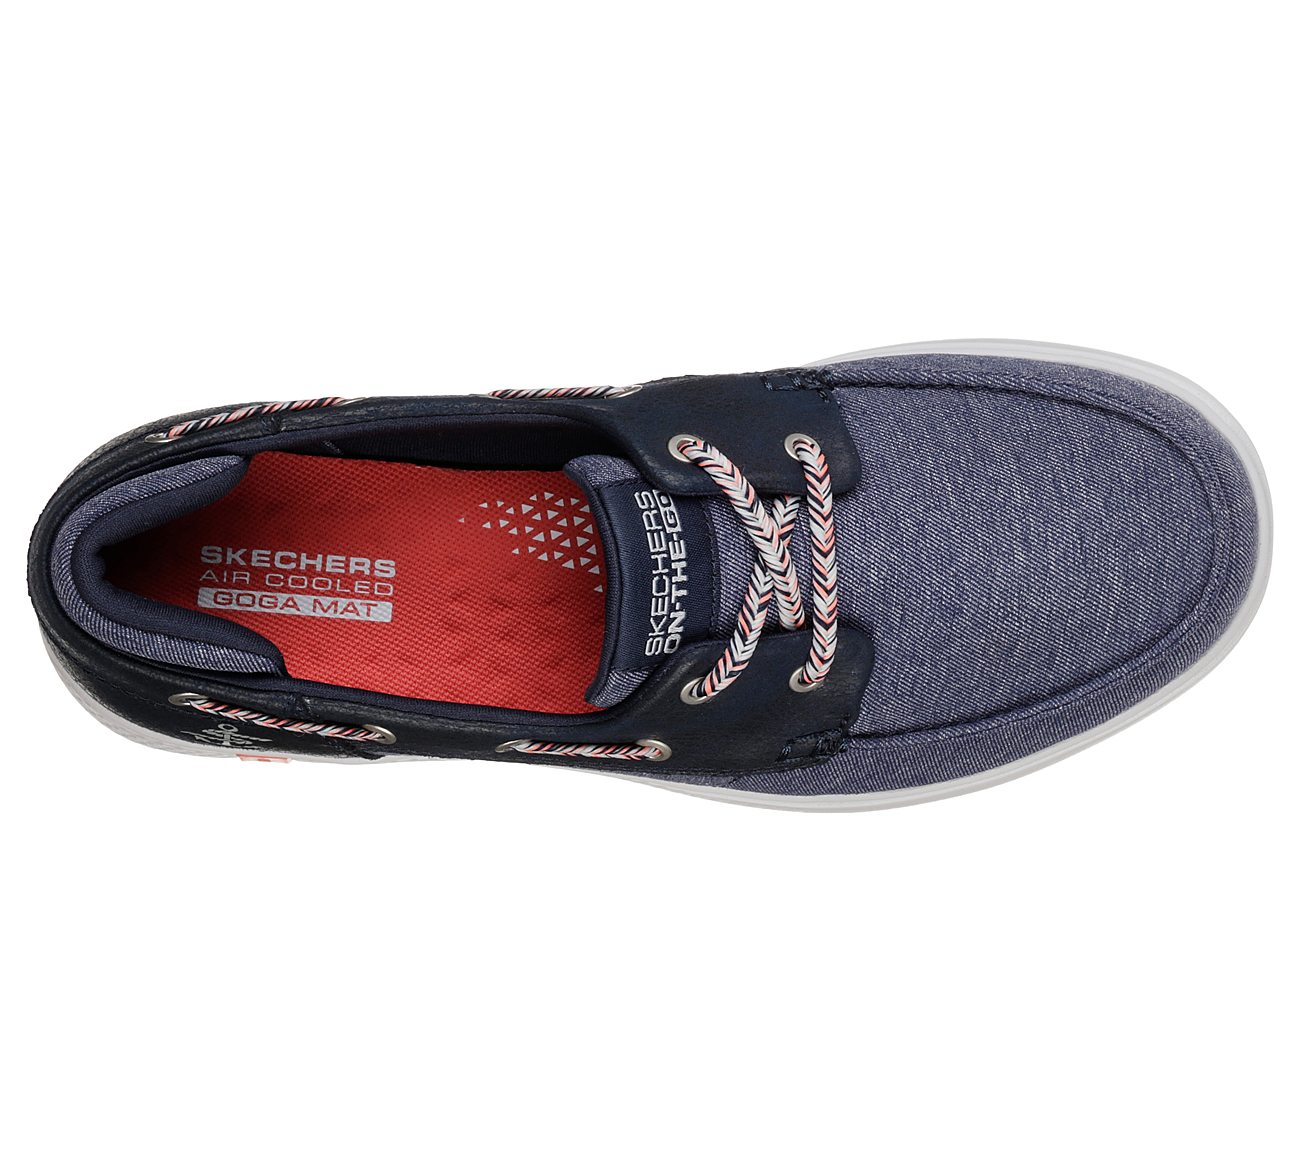 2afa0925579 SKECHERS- ON THE GO GLIDE ULTRA - PLAYA – Bigley Shoes and Clothing